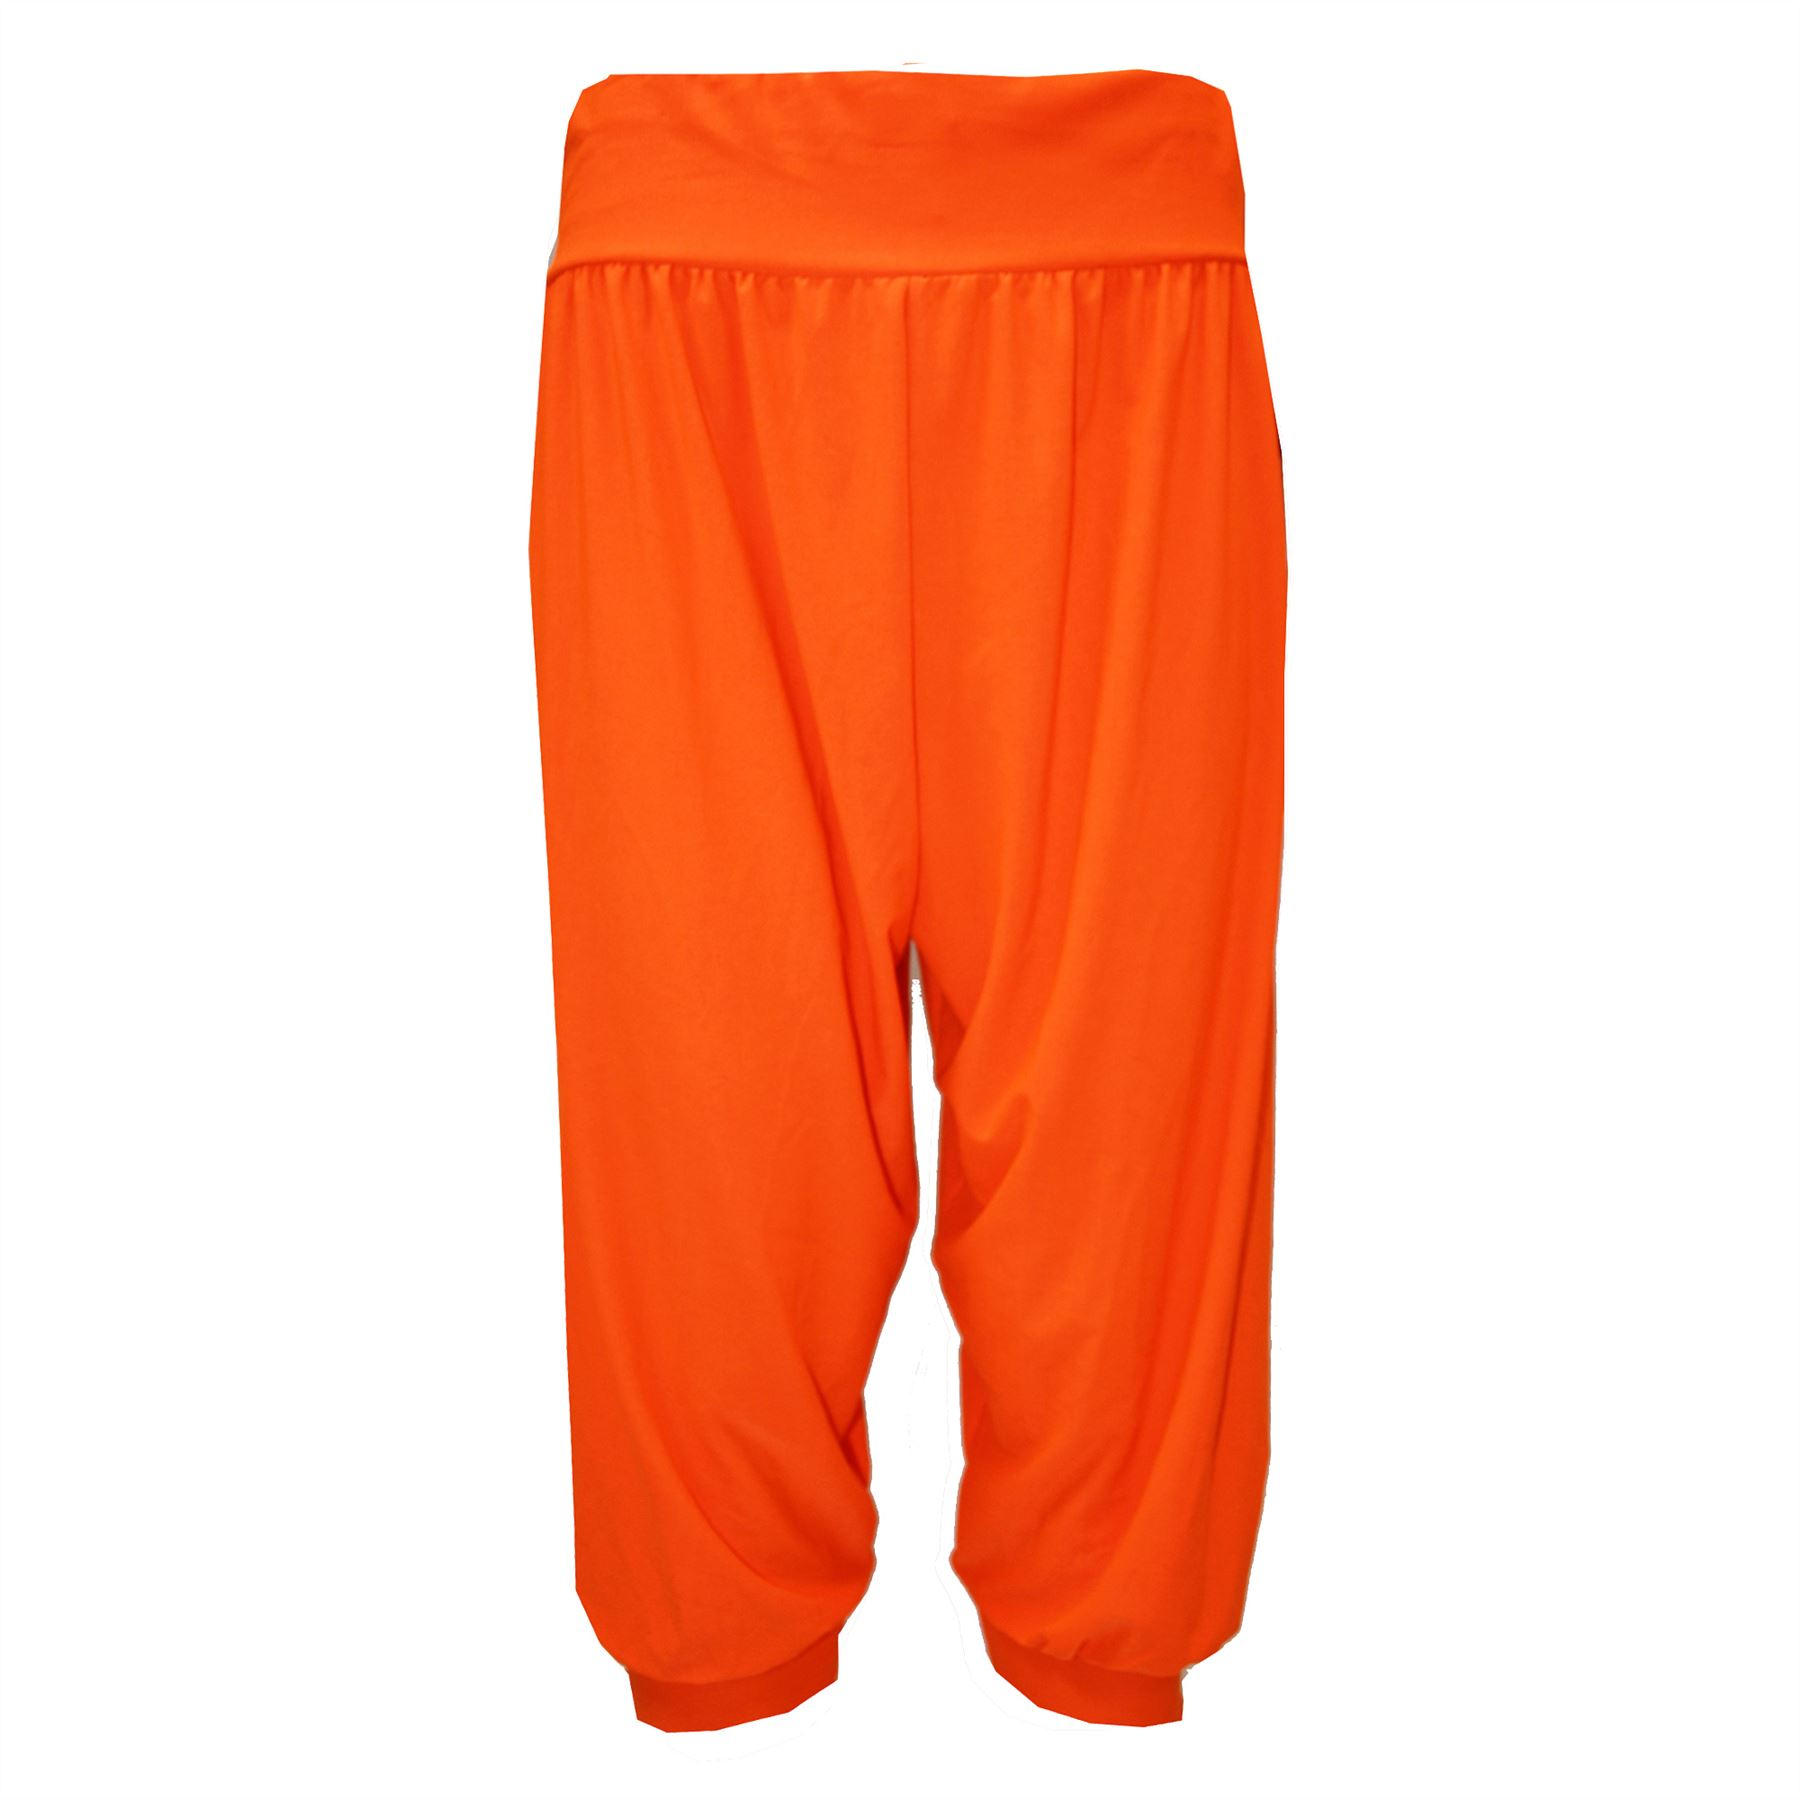 Find women cuffed pants at ShopStyle. Shop the latest collection of women cuffed pants from the most popular stores - all in one place.